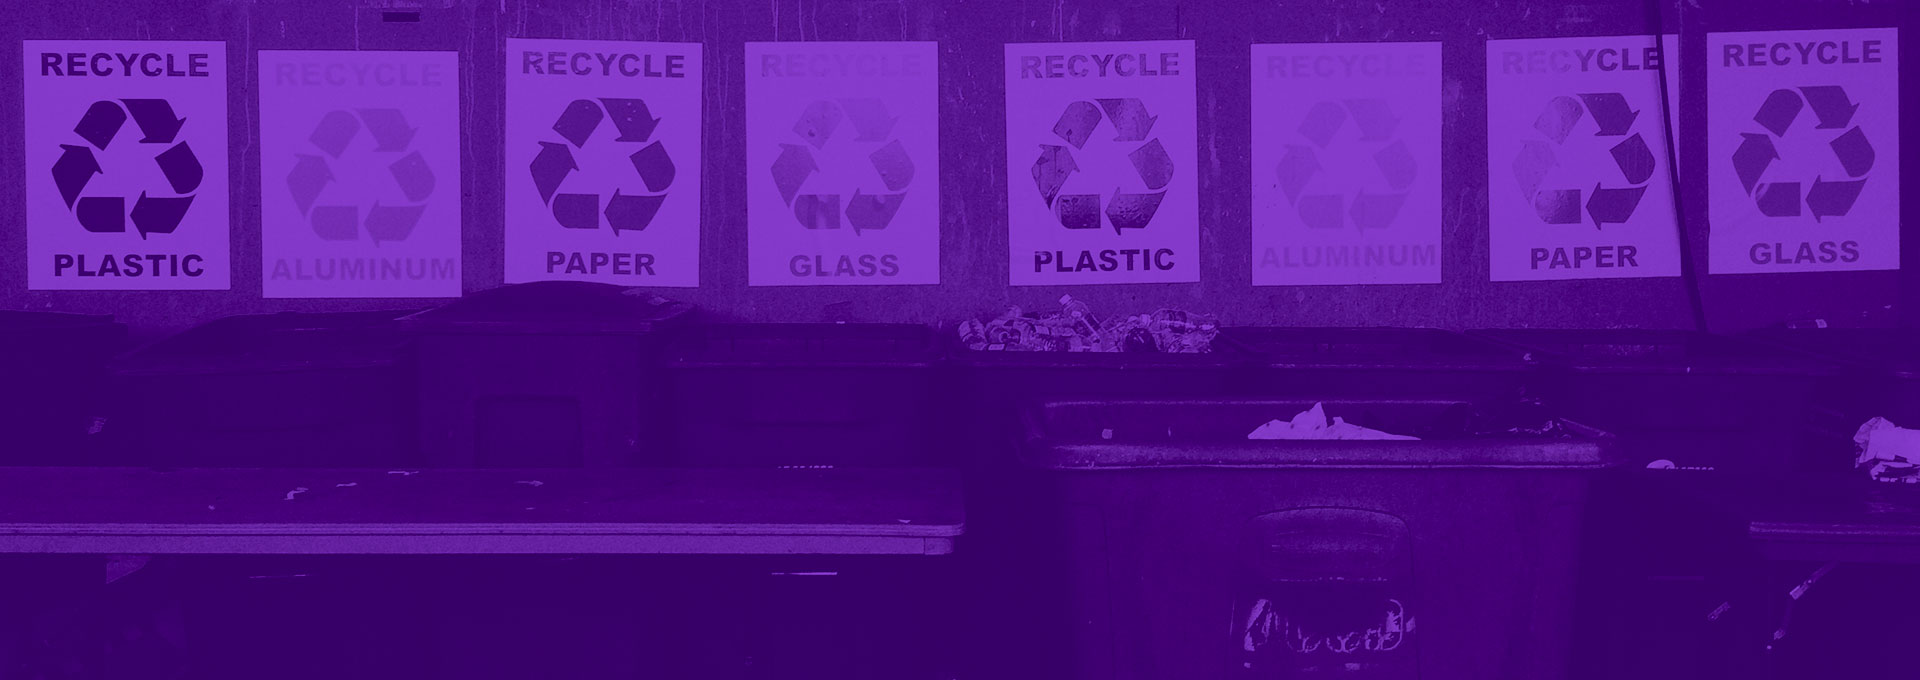 Recycling in the Workplace: Are You Doing It Right?